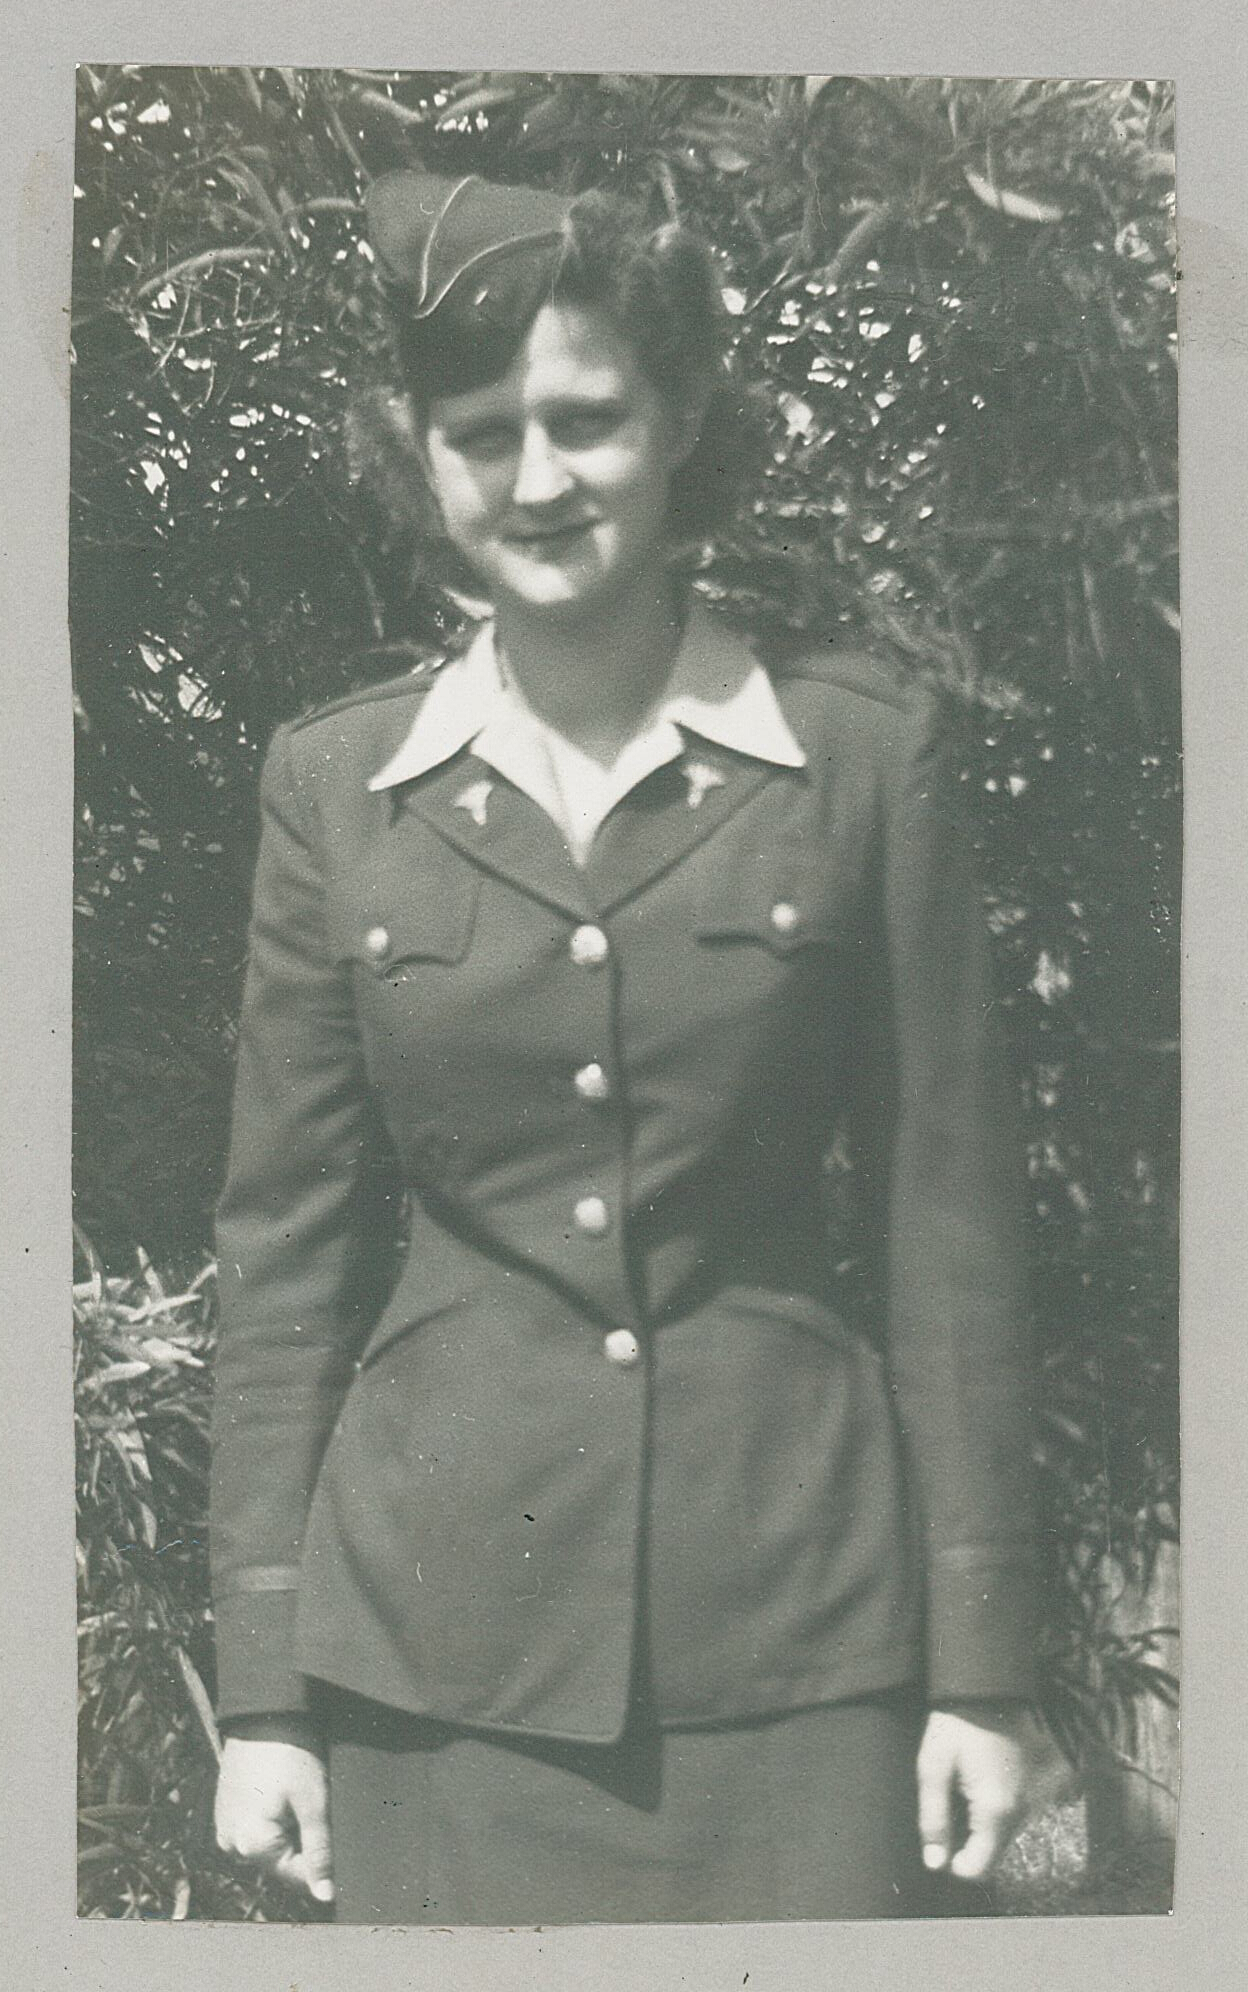 Cecelia Schmolke, photo from American Legion Honor Roll, World War II scrapbook, MCHS collections, #1980.11.1.